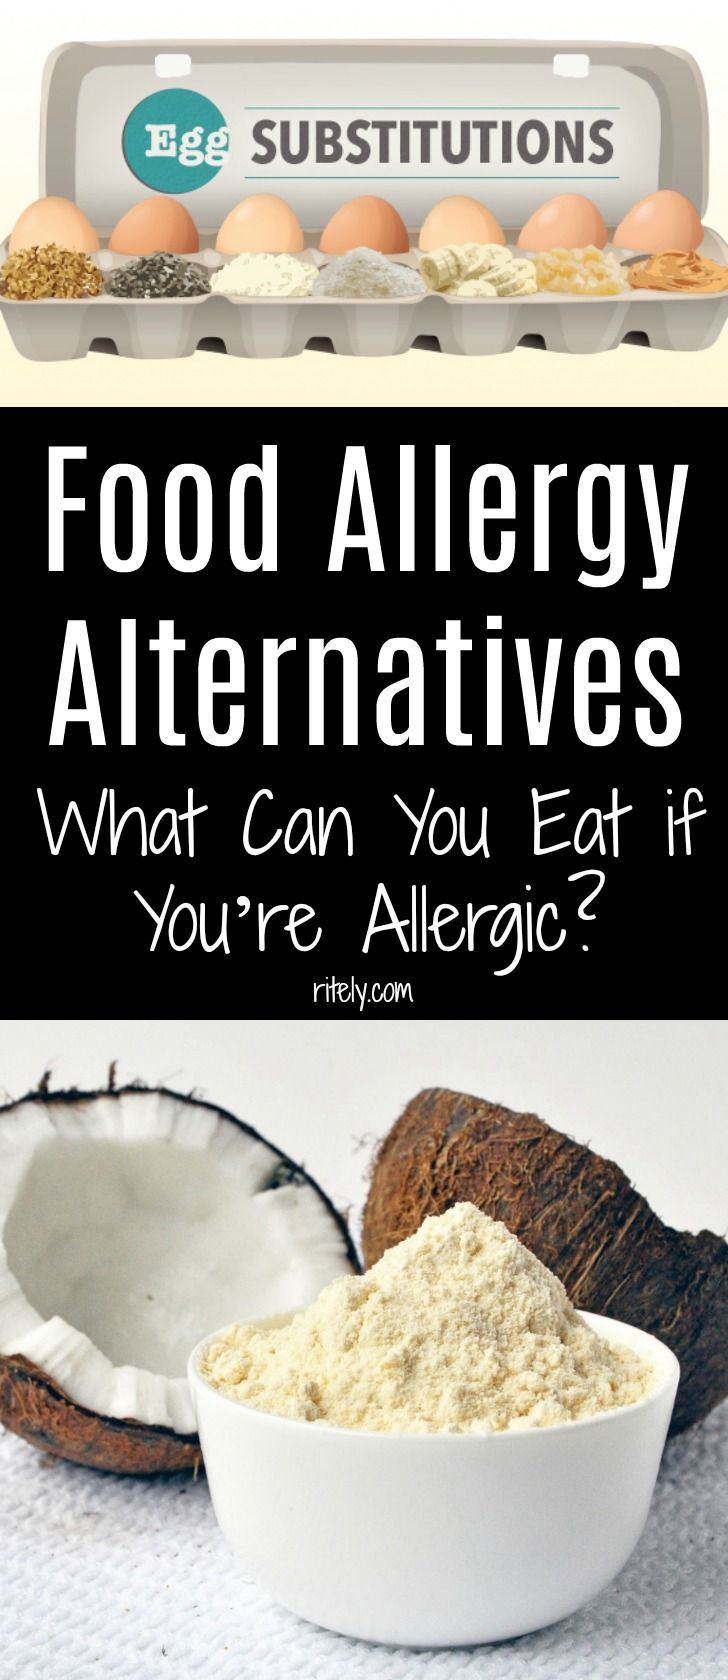 Food allergy alternatives what can you eat if youre allergic a food allergy occurs when your bodys immune system sees a certain food as a harmful forumfinder Images